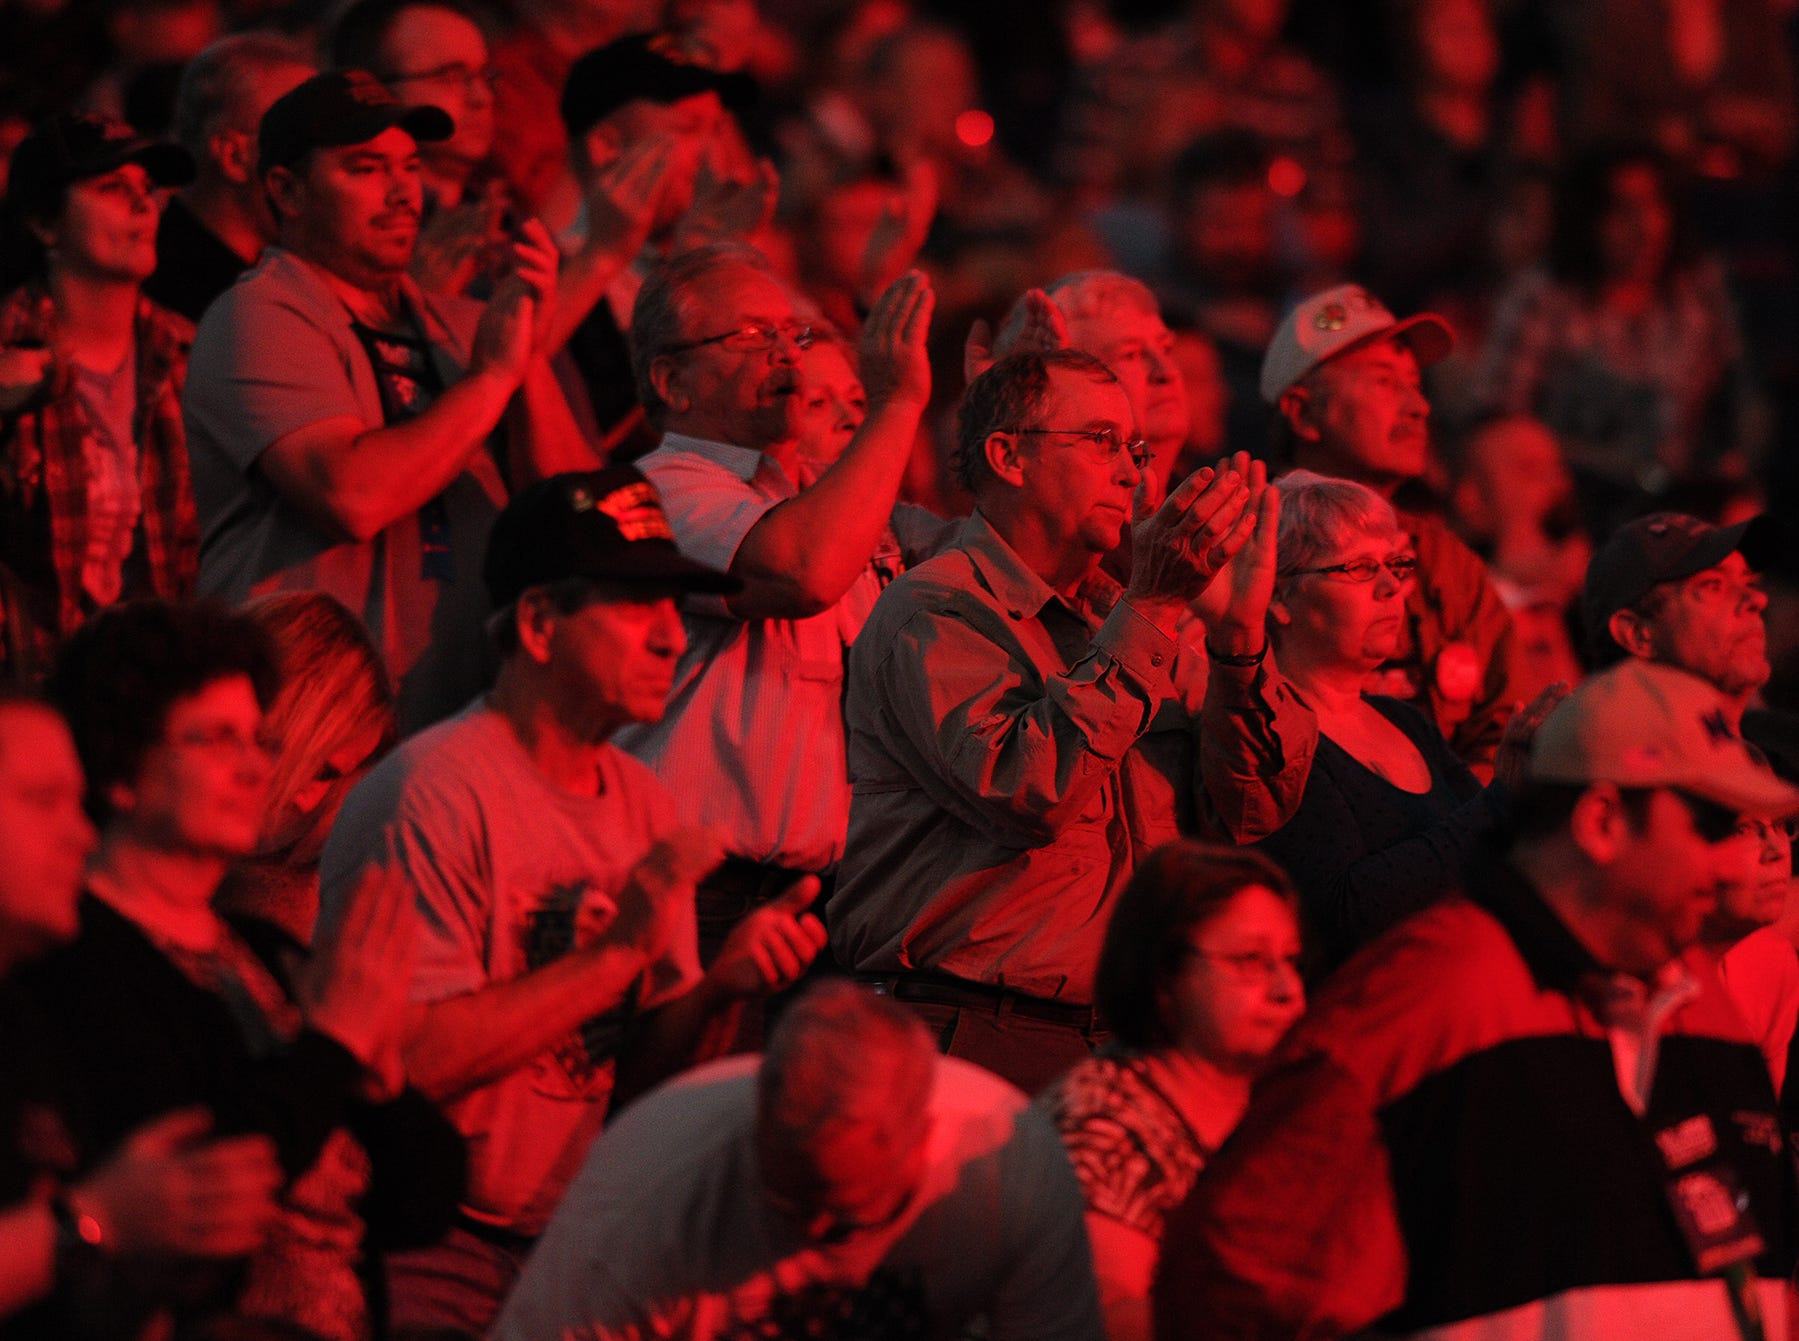 The crowd gives Wayne LaPierre, executive vice president of the NRA, a standing ovation at the NRA Stand and Fight Rally during the 143rd National Rifle Association Annual Meeting at Lucas Oil Stadium, Saturday, April 26, 2014, in Indianapolis.